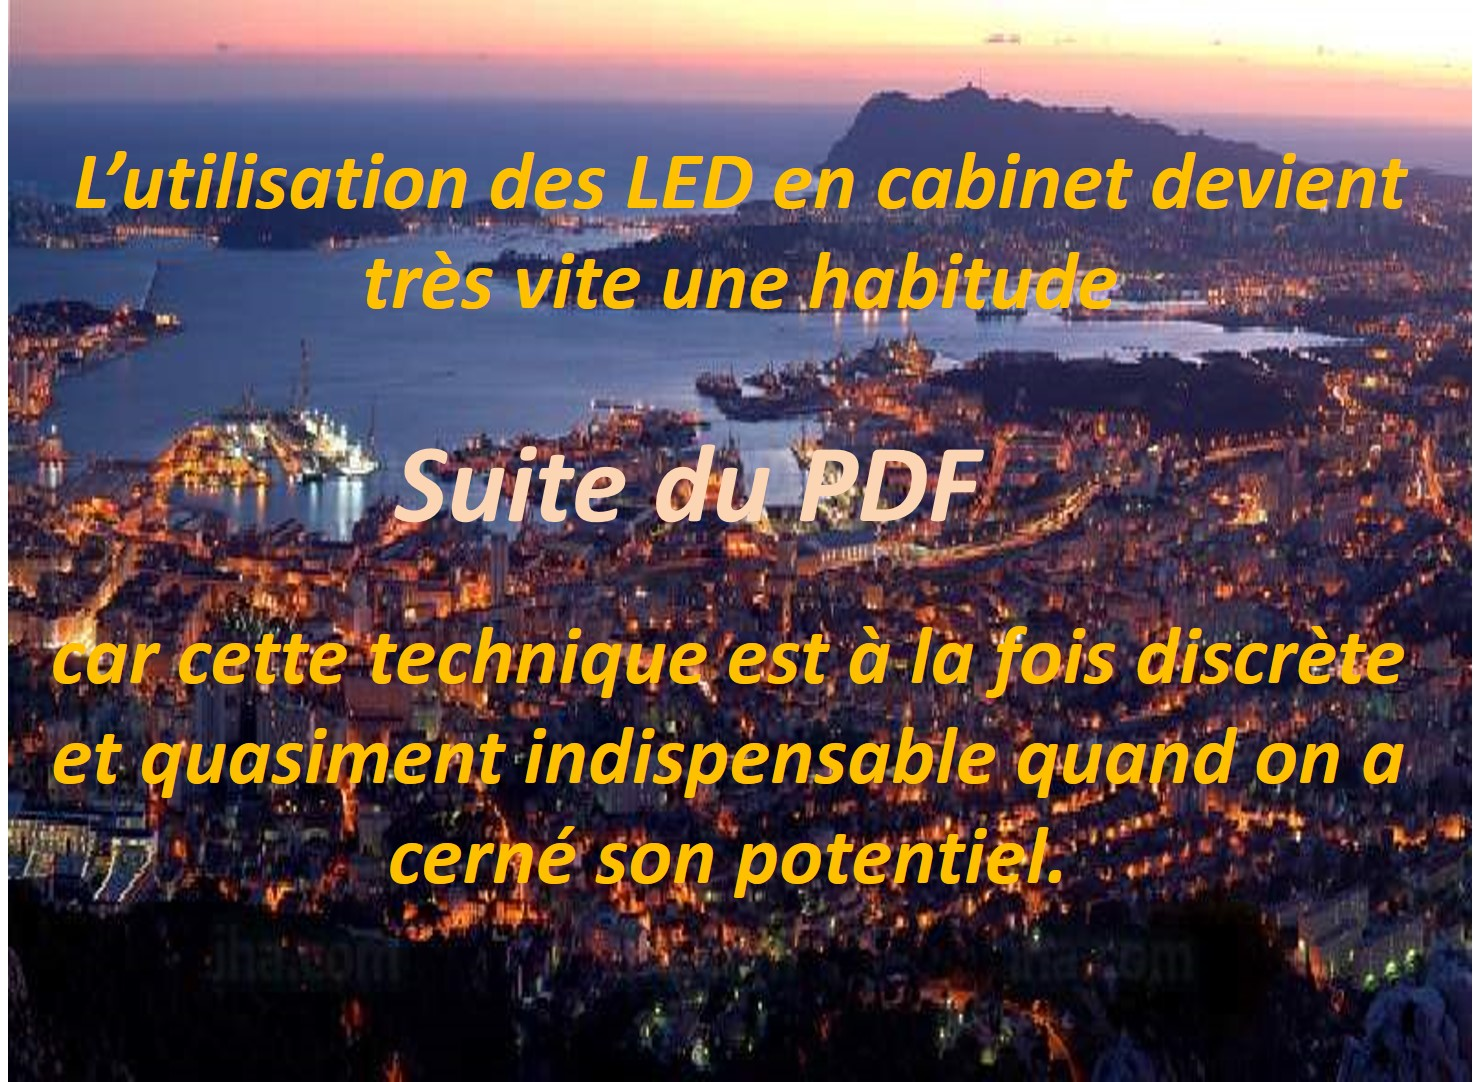 DR MICHEL LED en cabinet suite du PDF